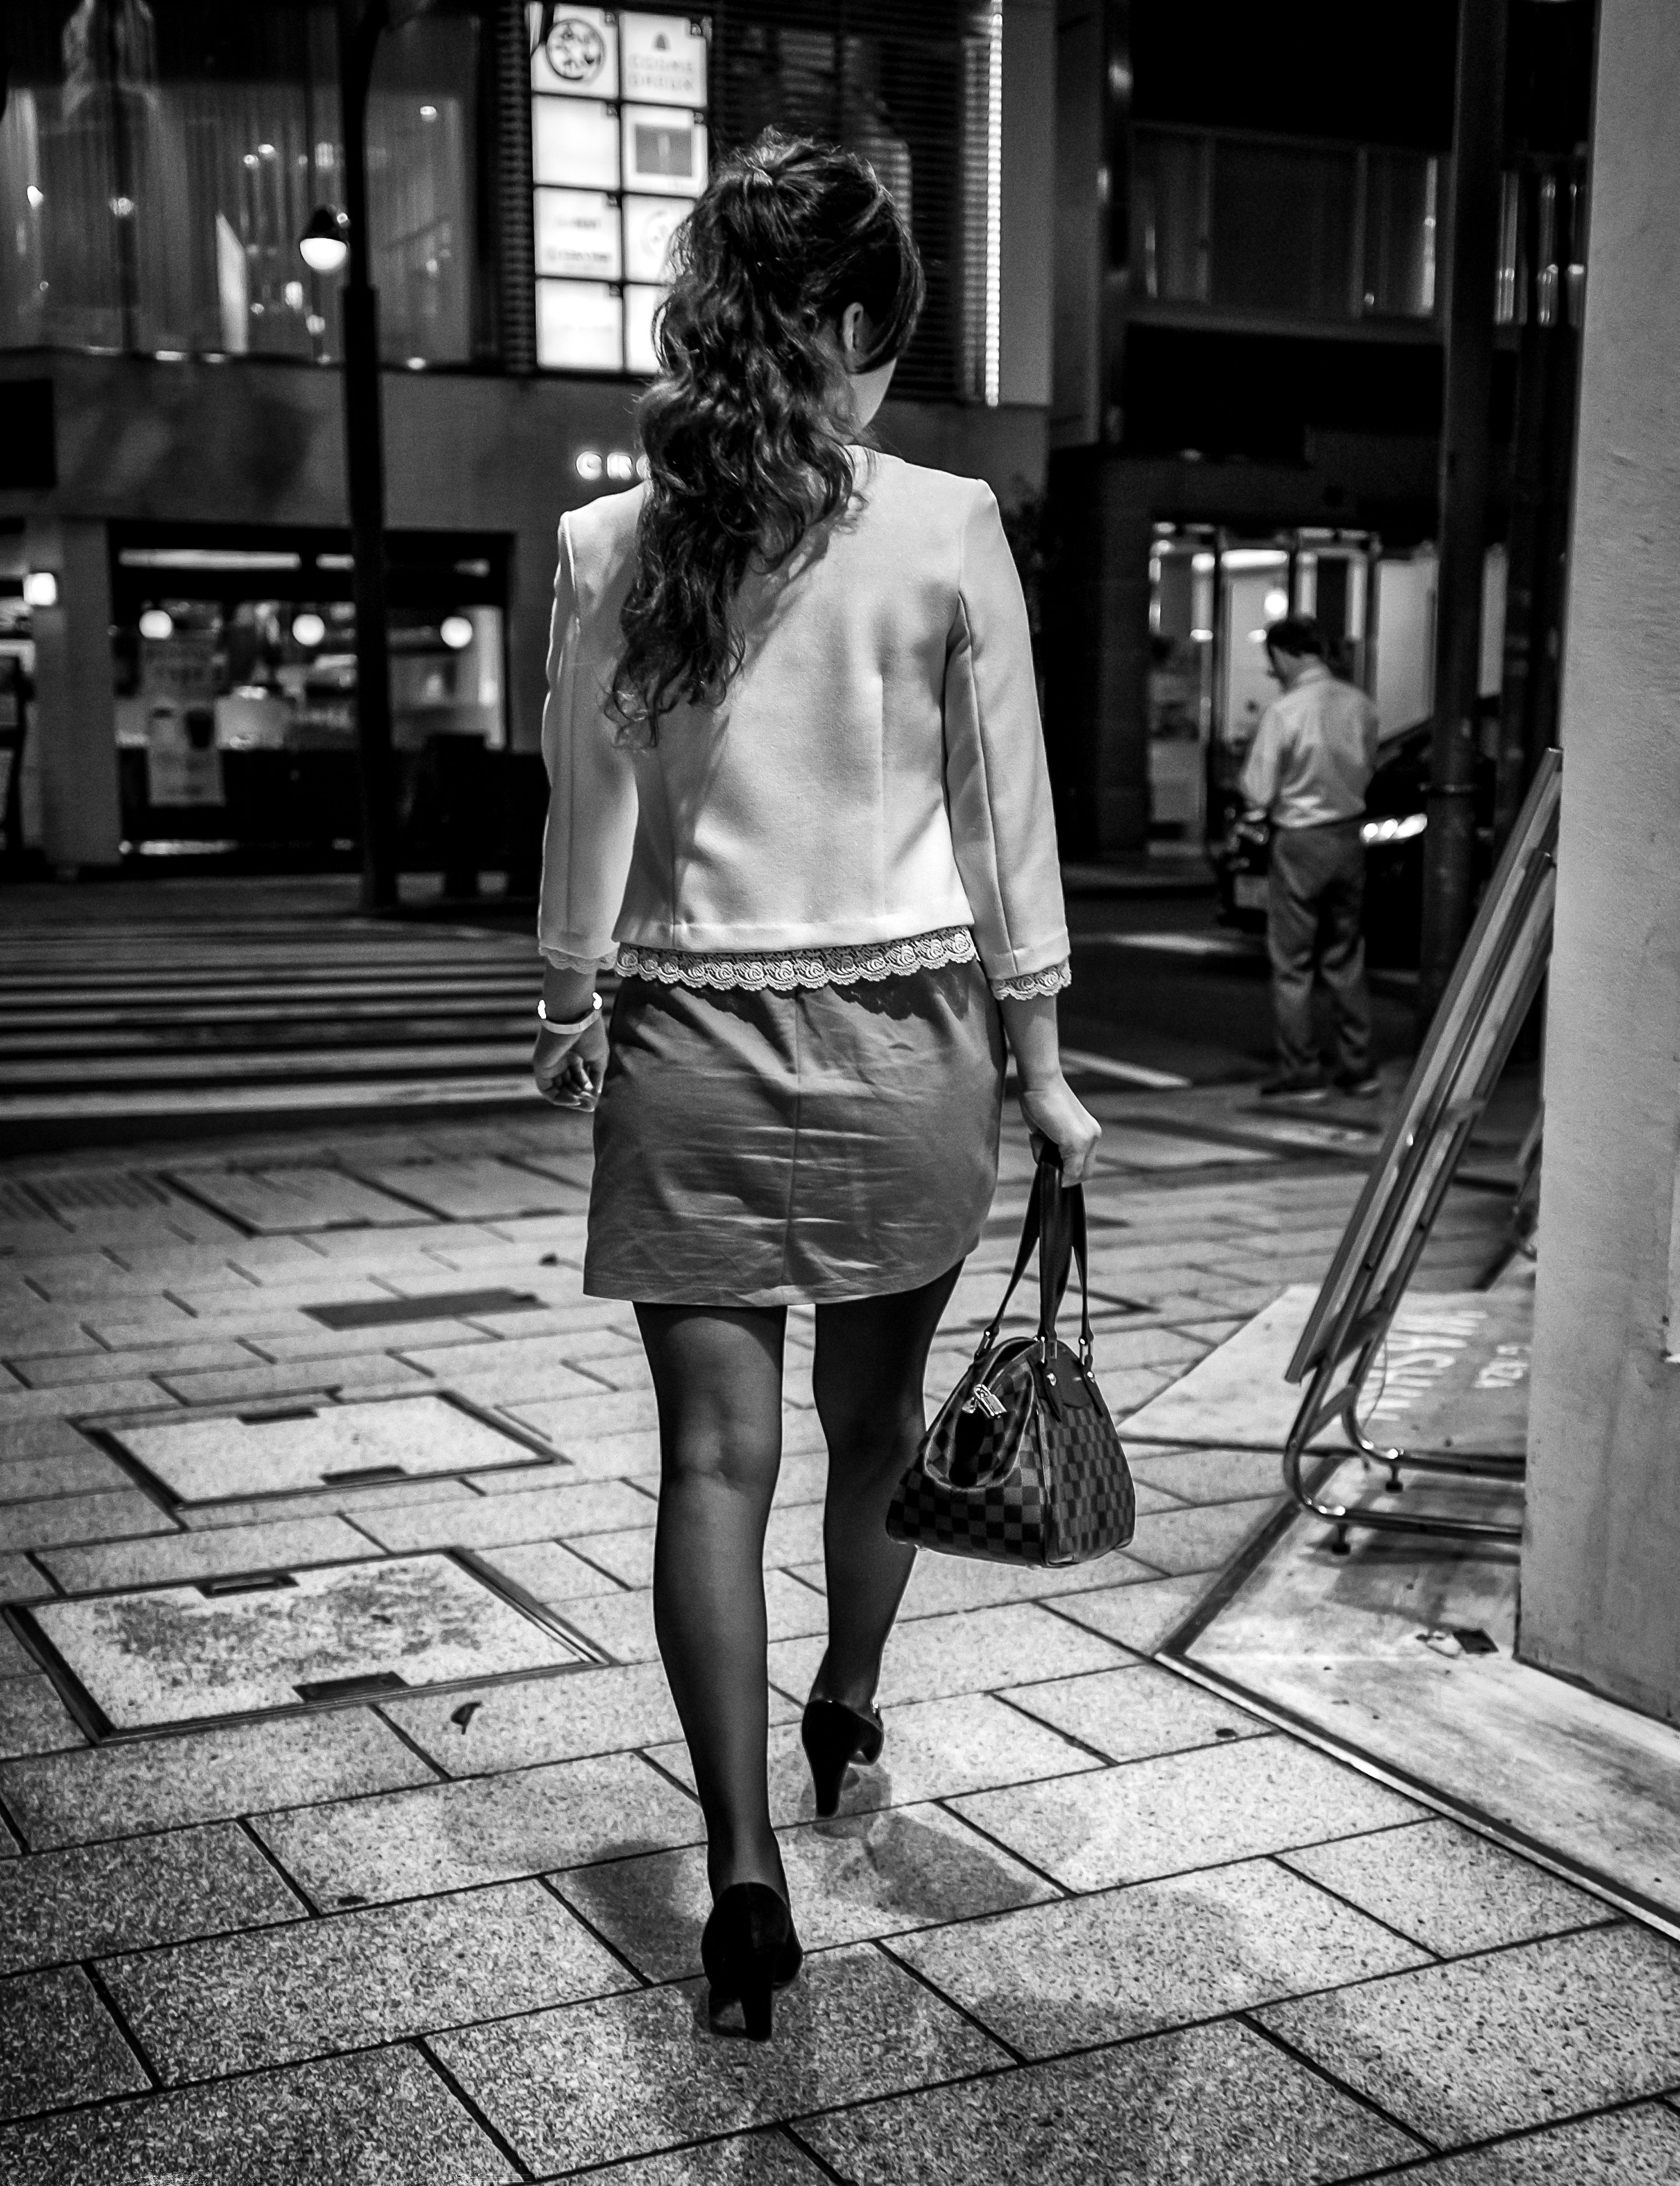 lifestyles, full length, rear view, casual clothing, person, walking, leisure activity, street, sidewalk, standing, city life, building exterior, city, incidental people, men, footpath, outdoors, front view